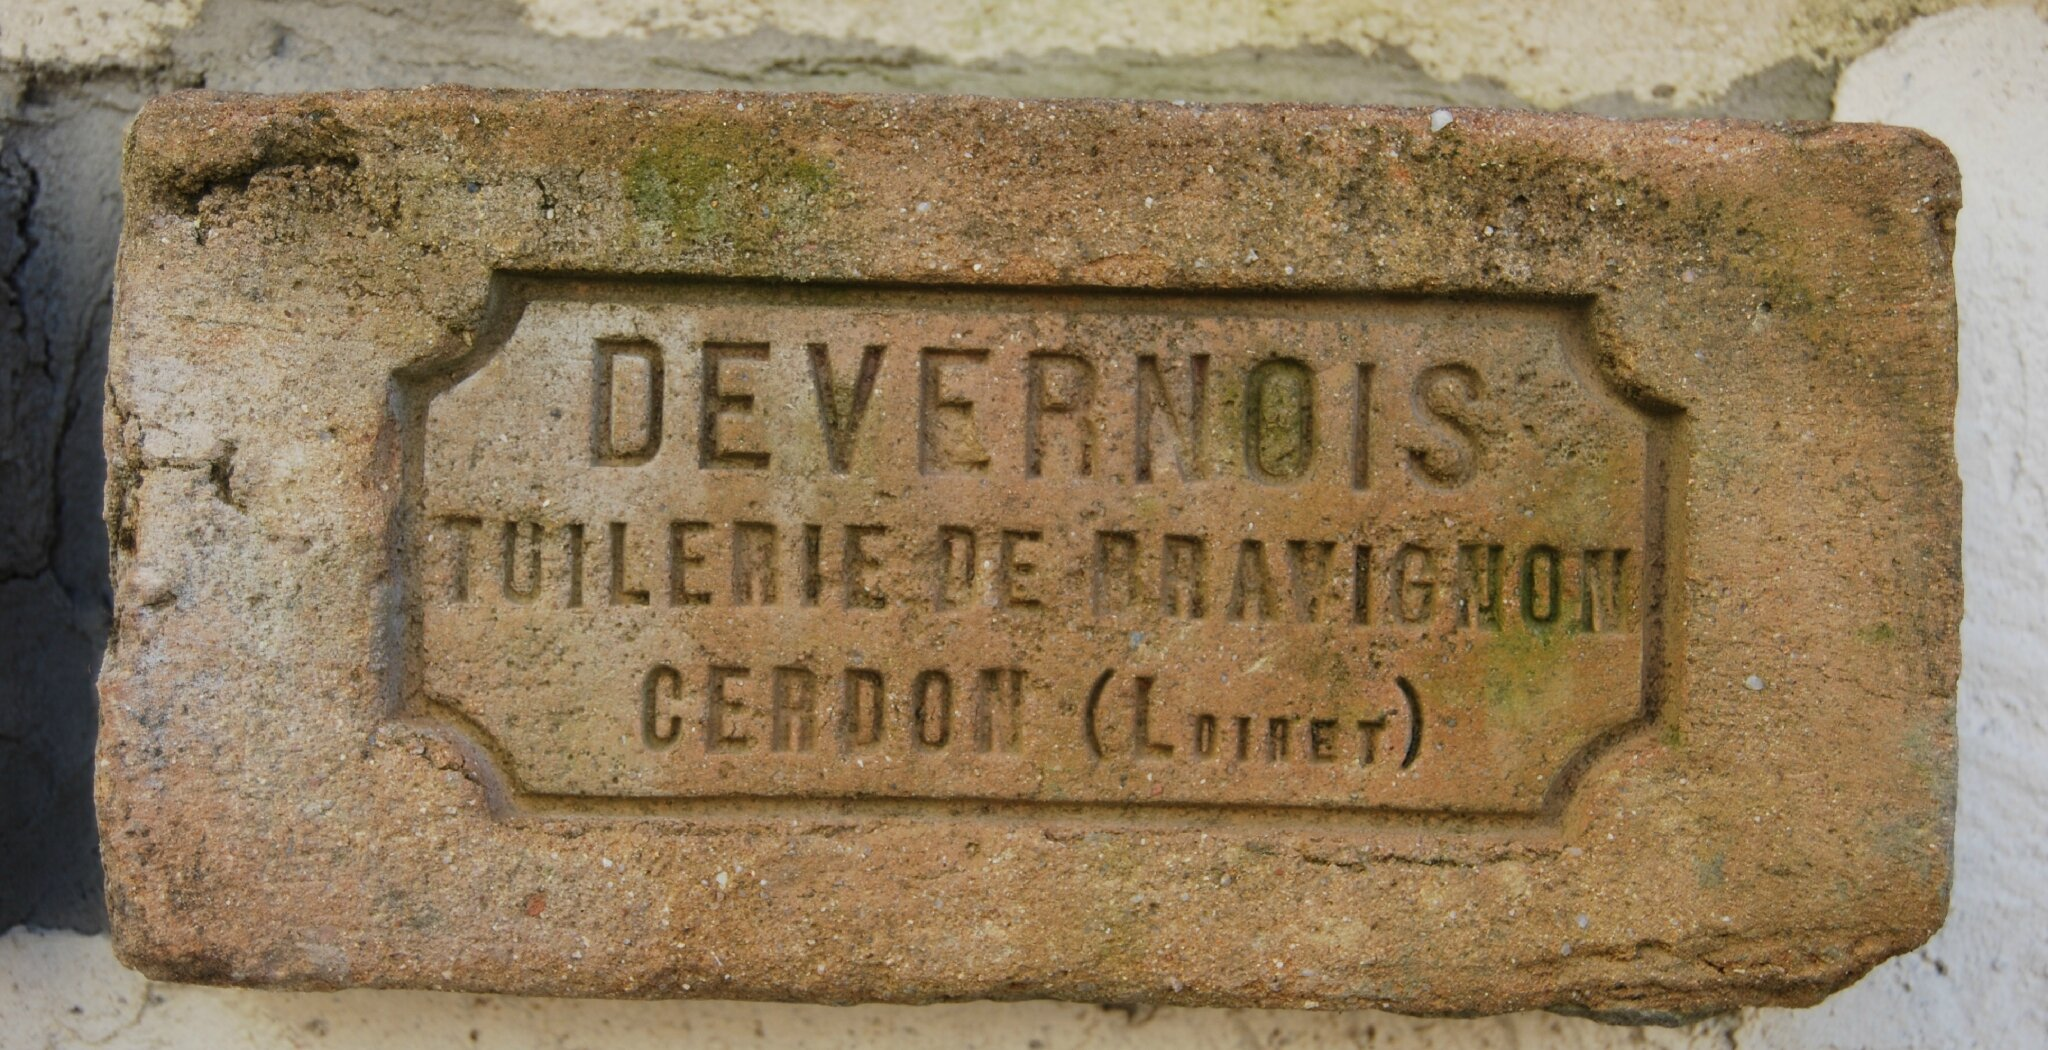 Devernois à Cerdon